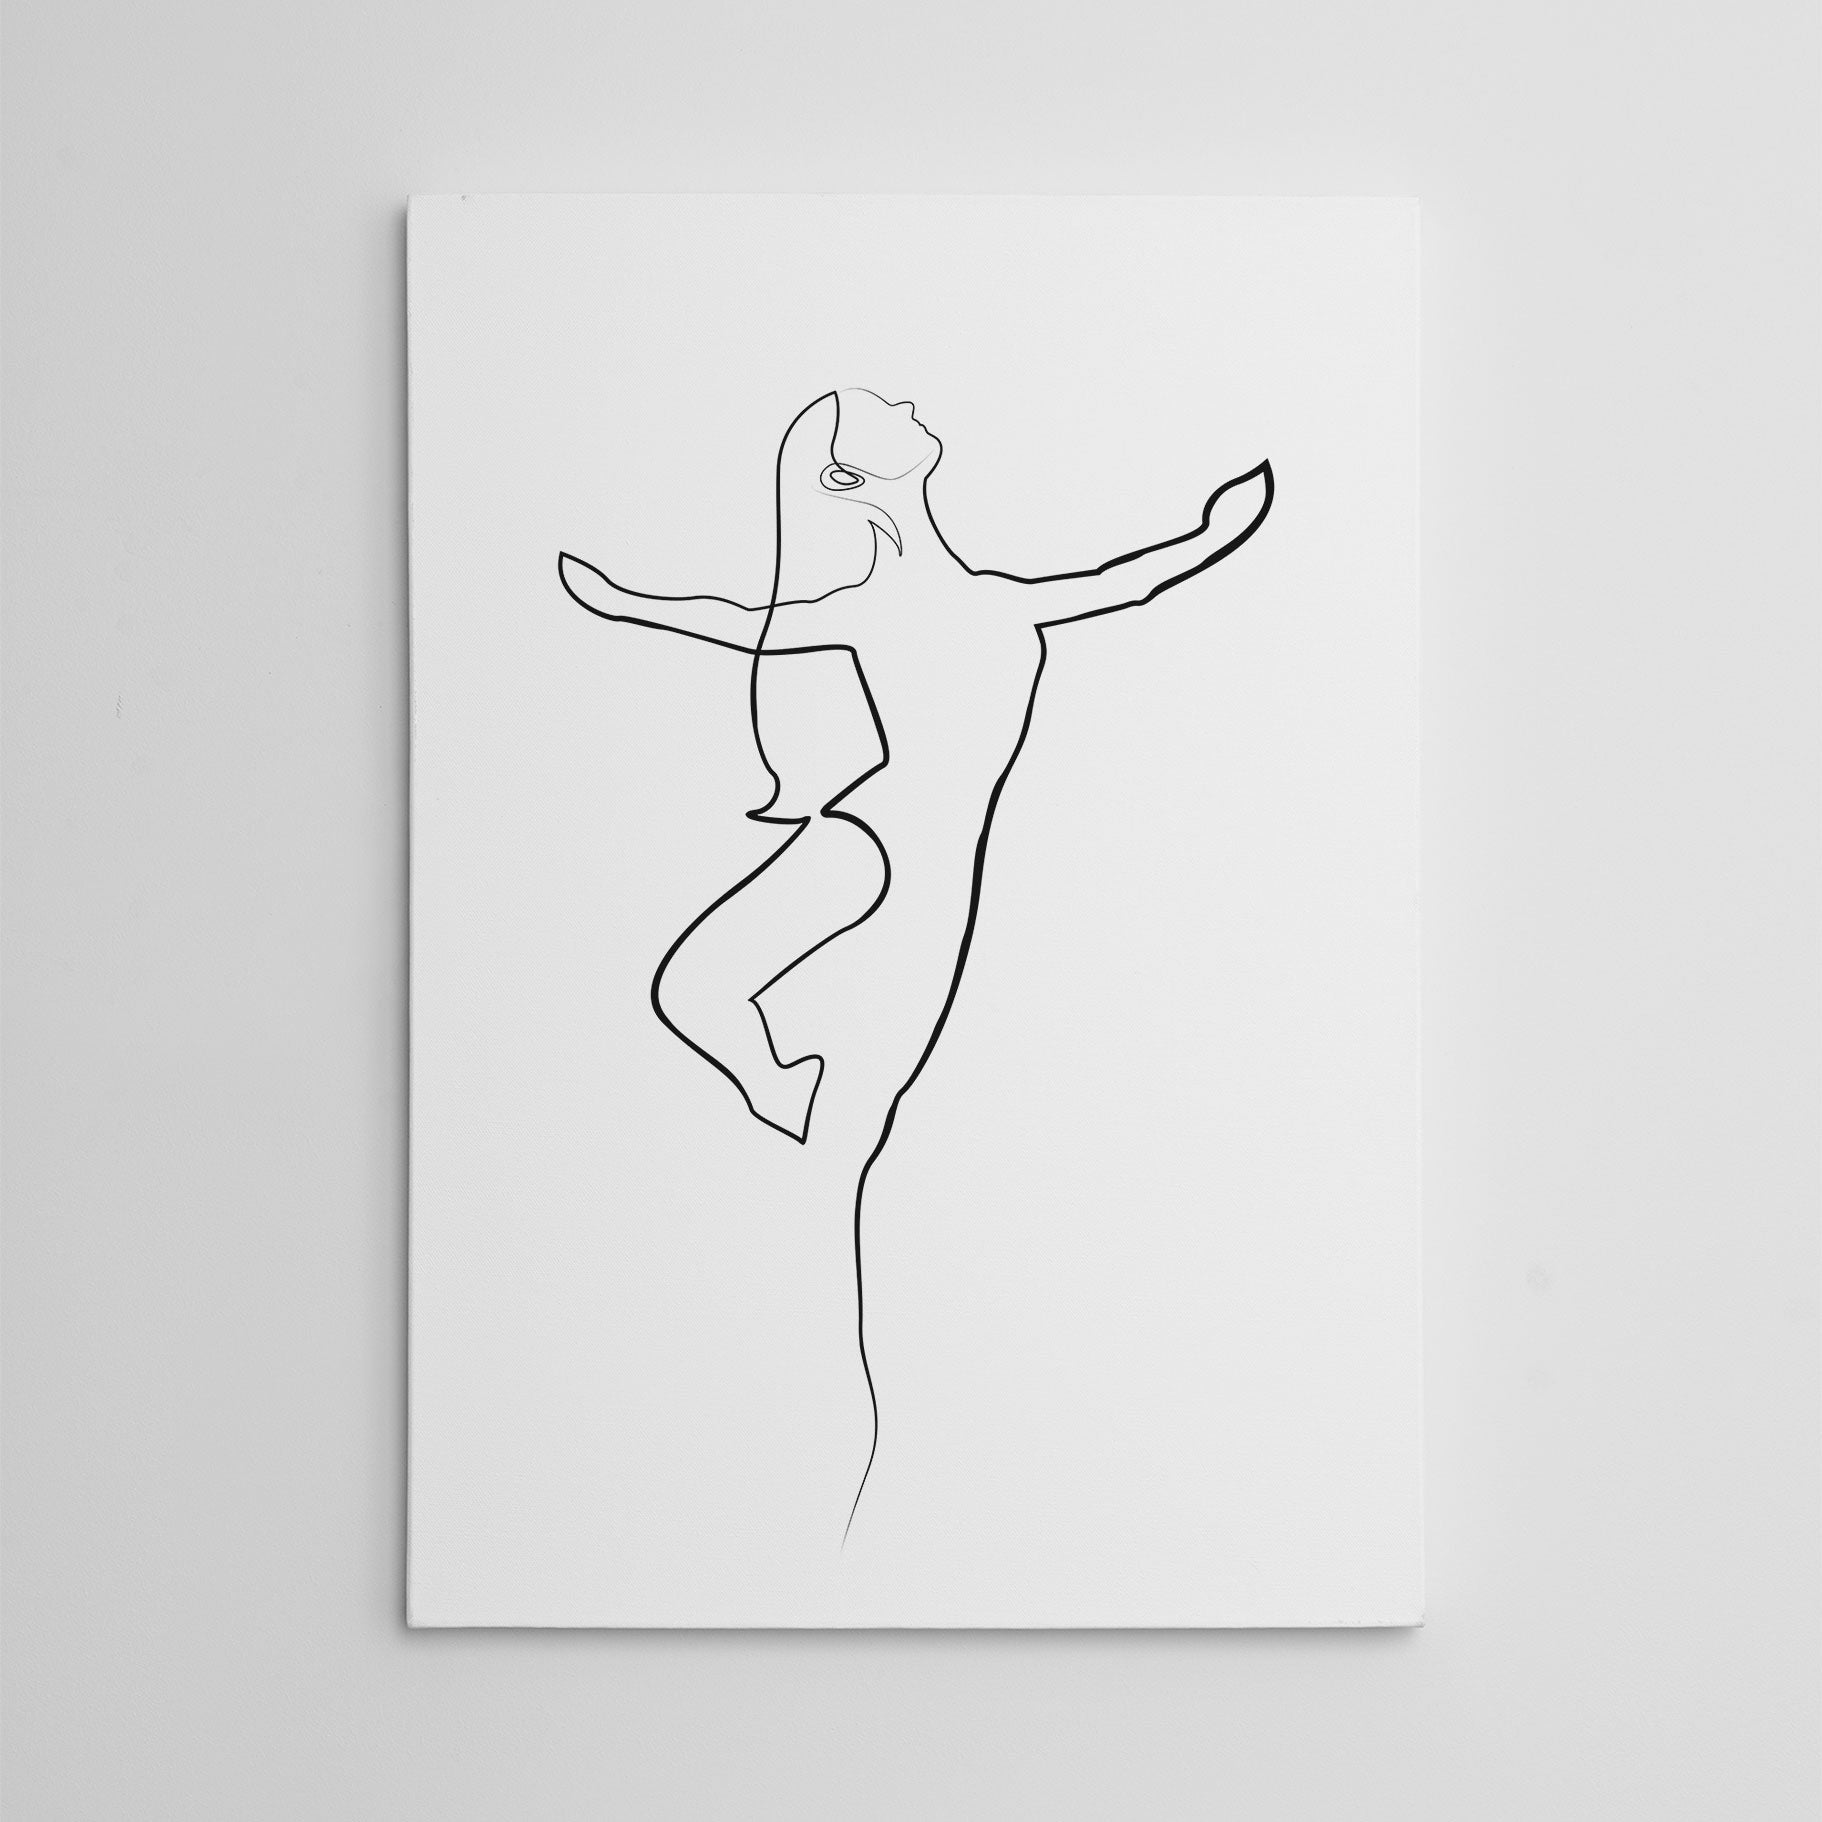 Beautiful line art canvas print with a gracious ballerina.